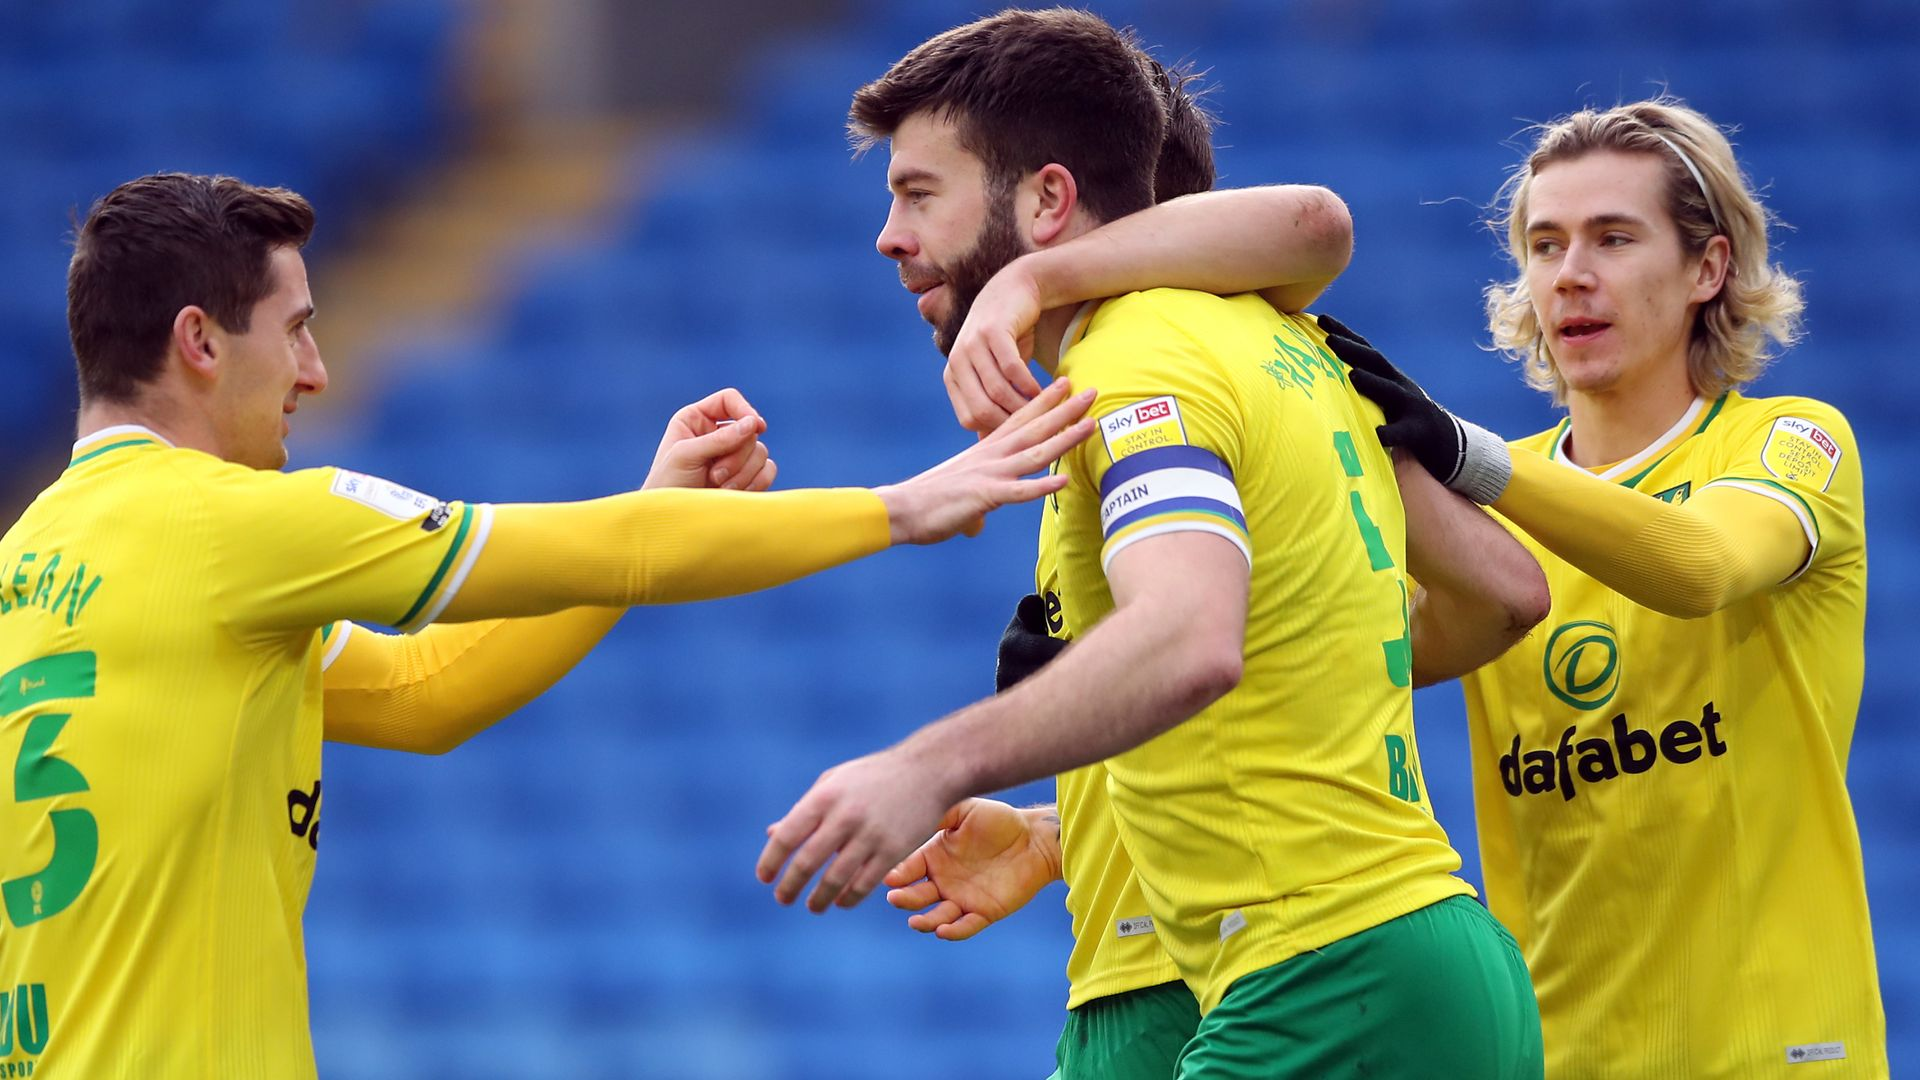 Norwich continue march as they beat Cardiff